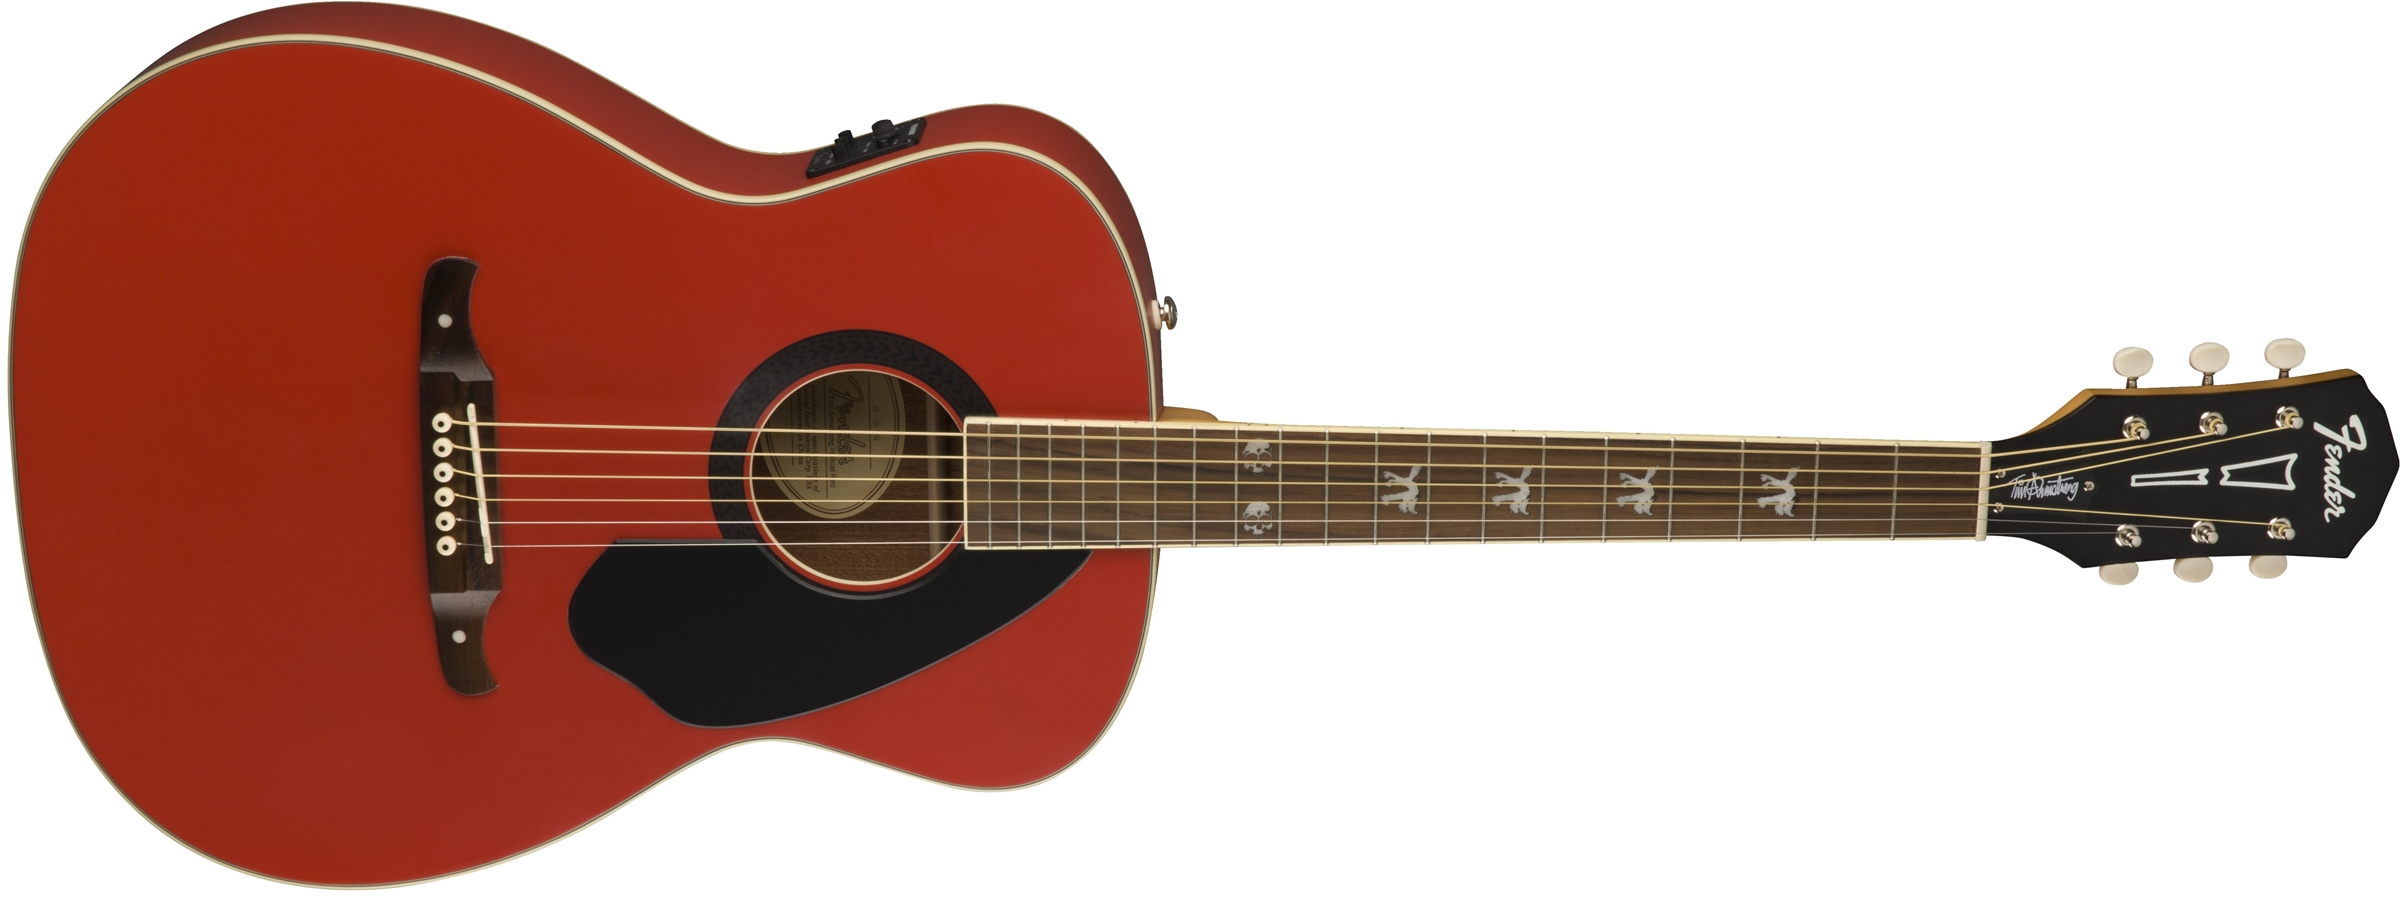 tim armstrong hellcat fsr ruby red acoustic guitars. Black Bedroom Furniture Sets. Home Design Ideas